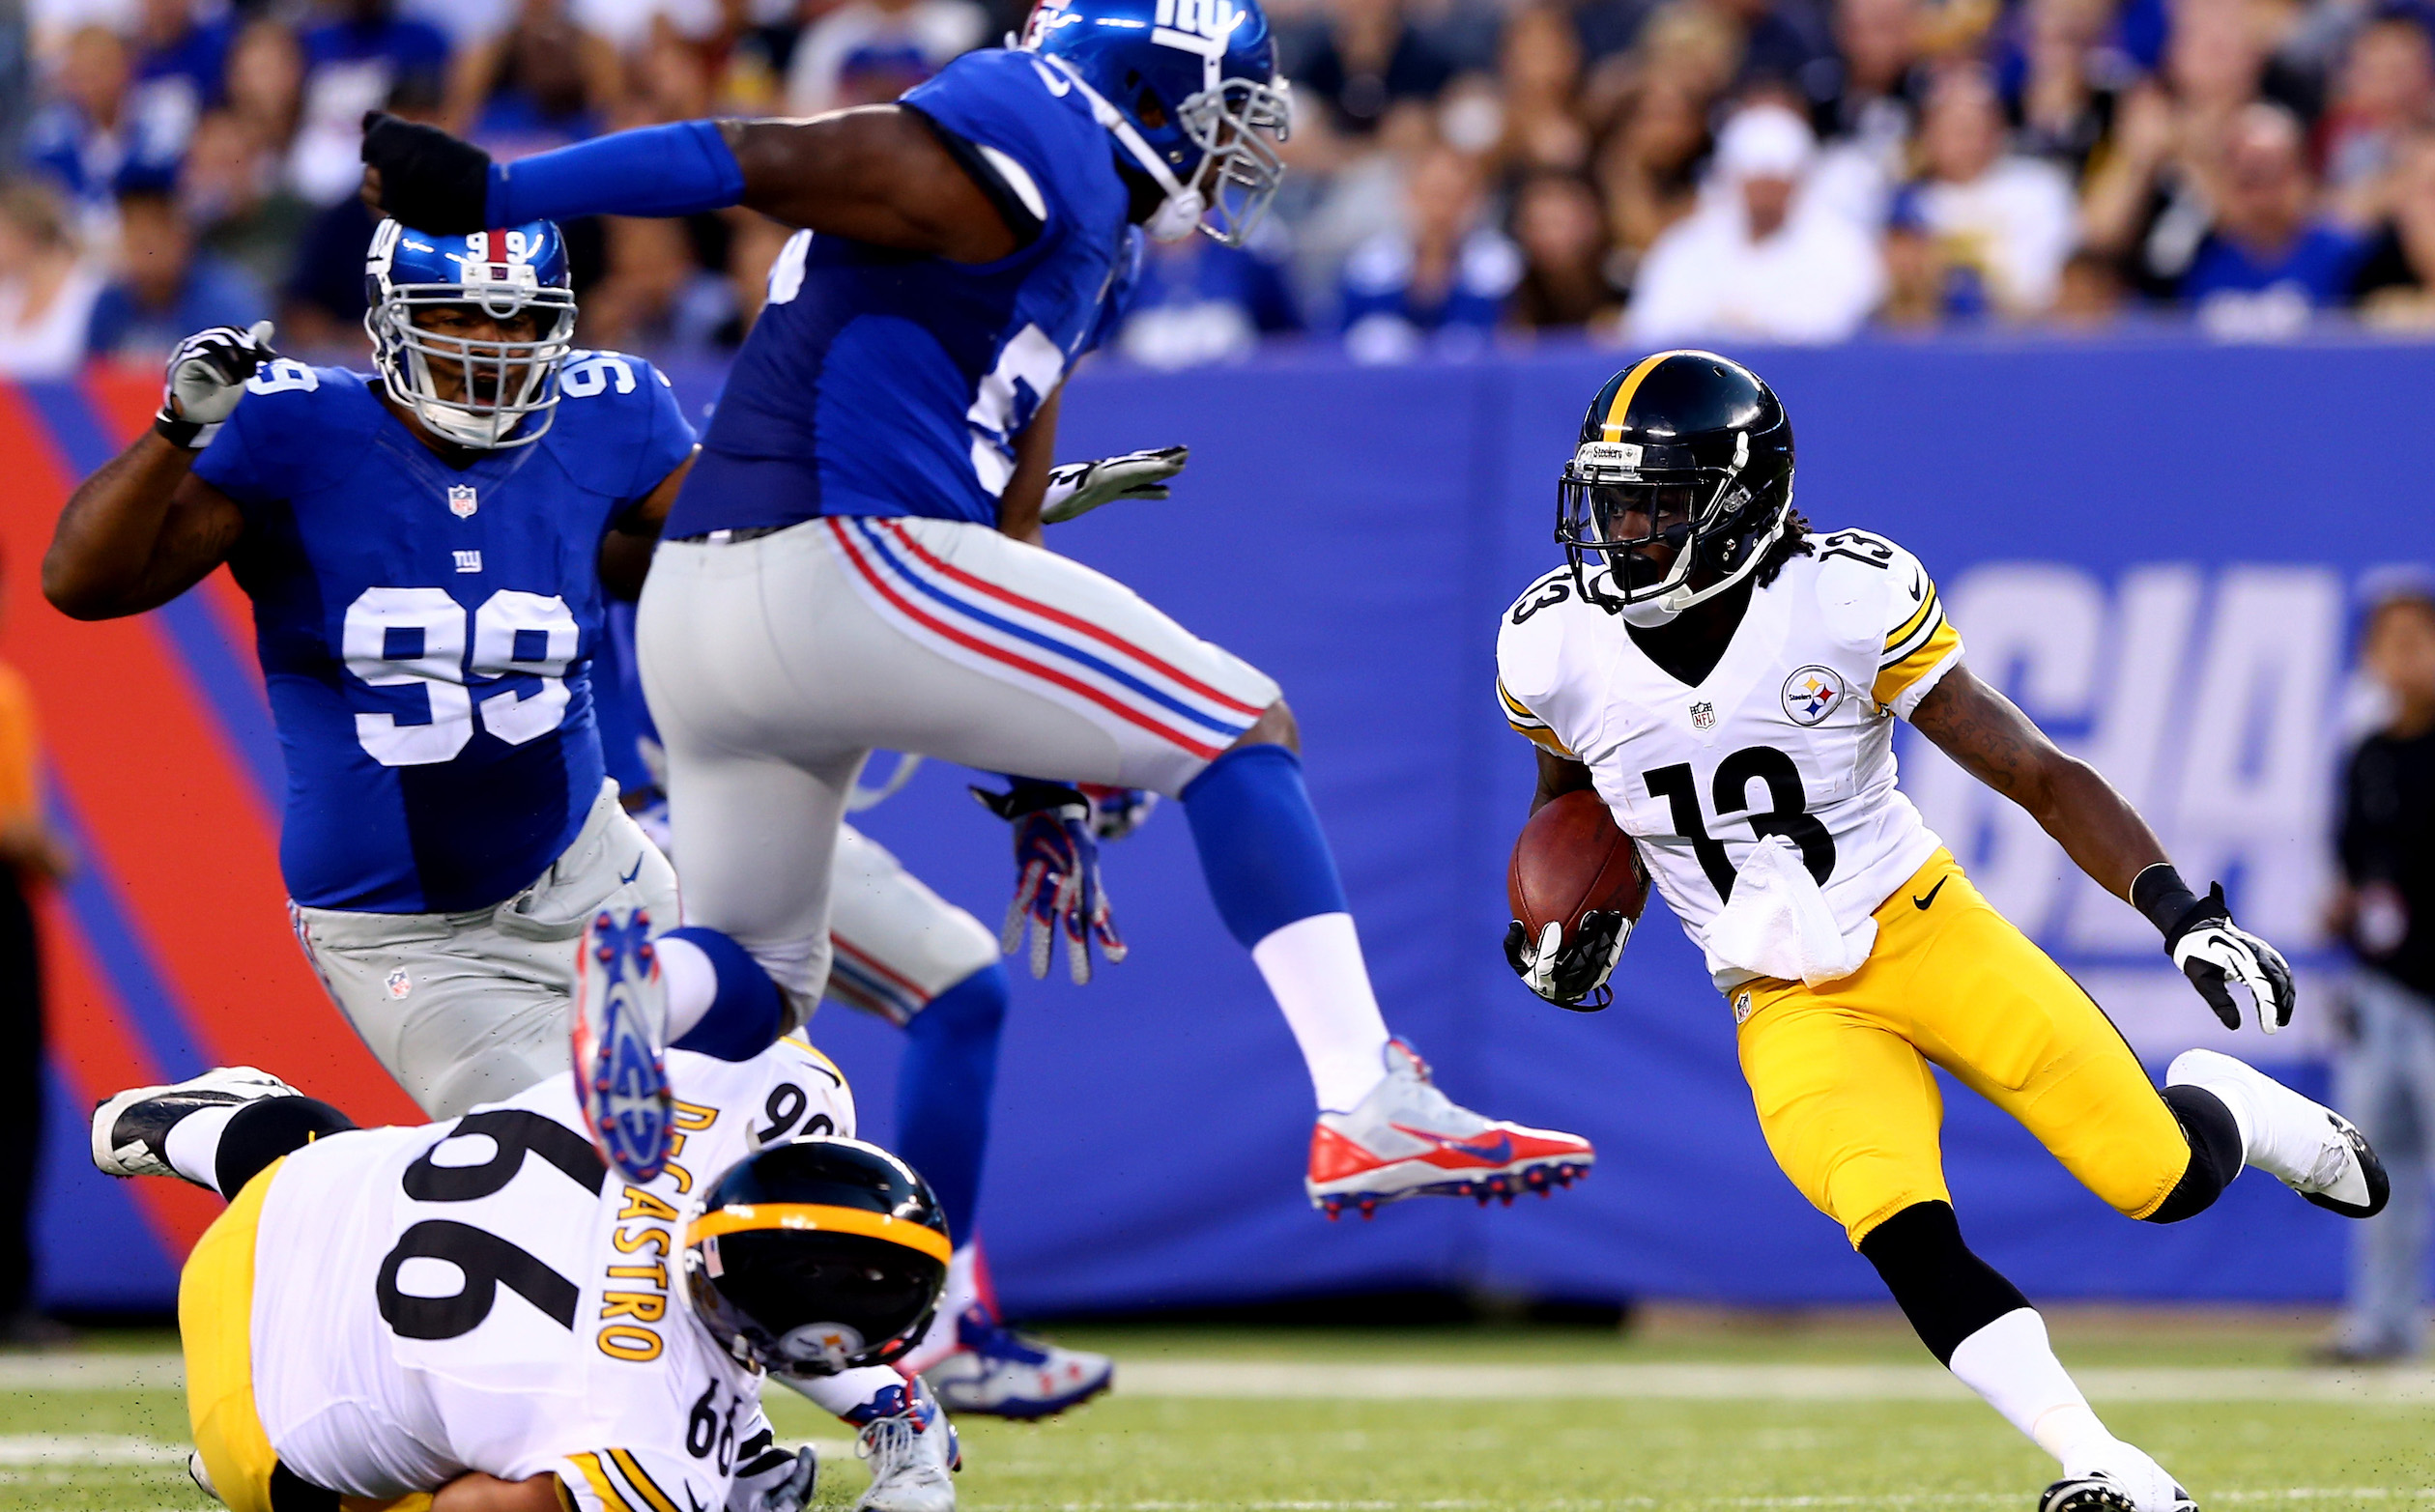 EAST RUTHERFORD, NJ - AUGUST 09:  Running back Dri Archer #13 of the Pittsburgh Steelers carries the ball against the New York Giants during a preseason game at MetLife Stadium on August 9, 2014 in East Rutherford, New Jersey.  (Photo by Elsa/Getty Images)